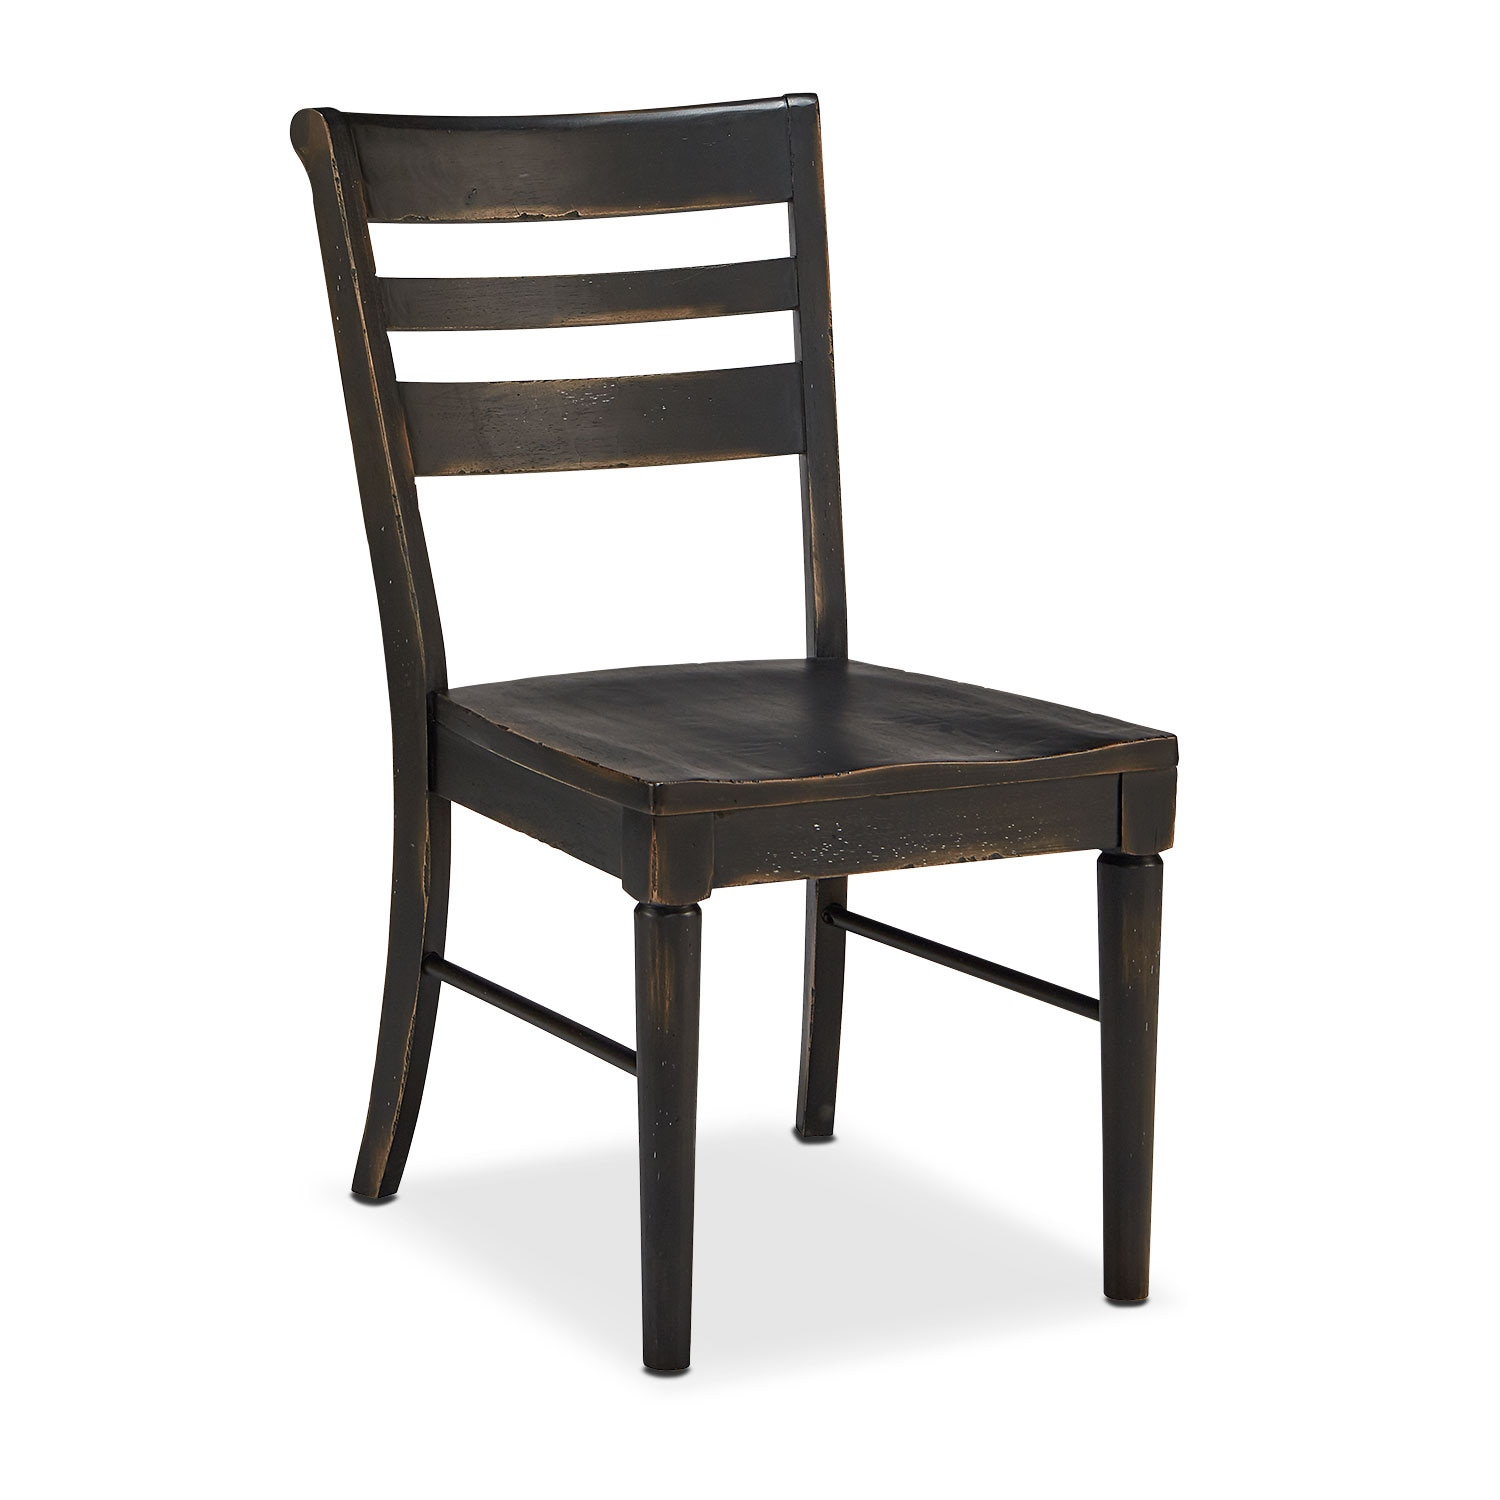 Set of 2 Kempton Slat Back Chairs - Chimney